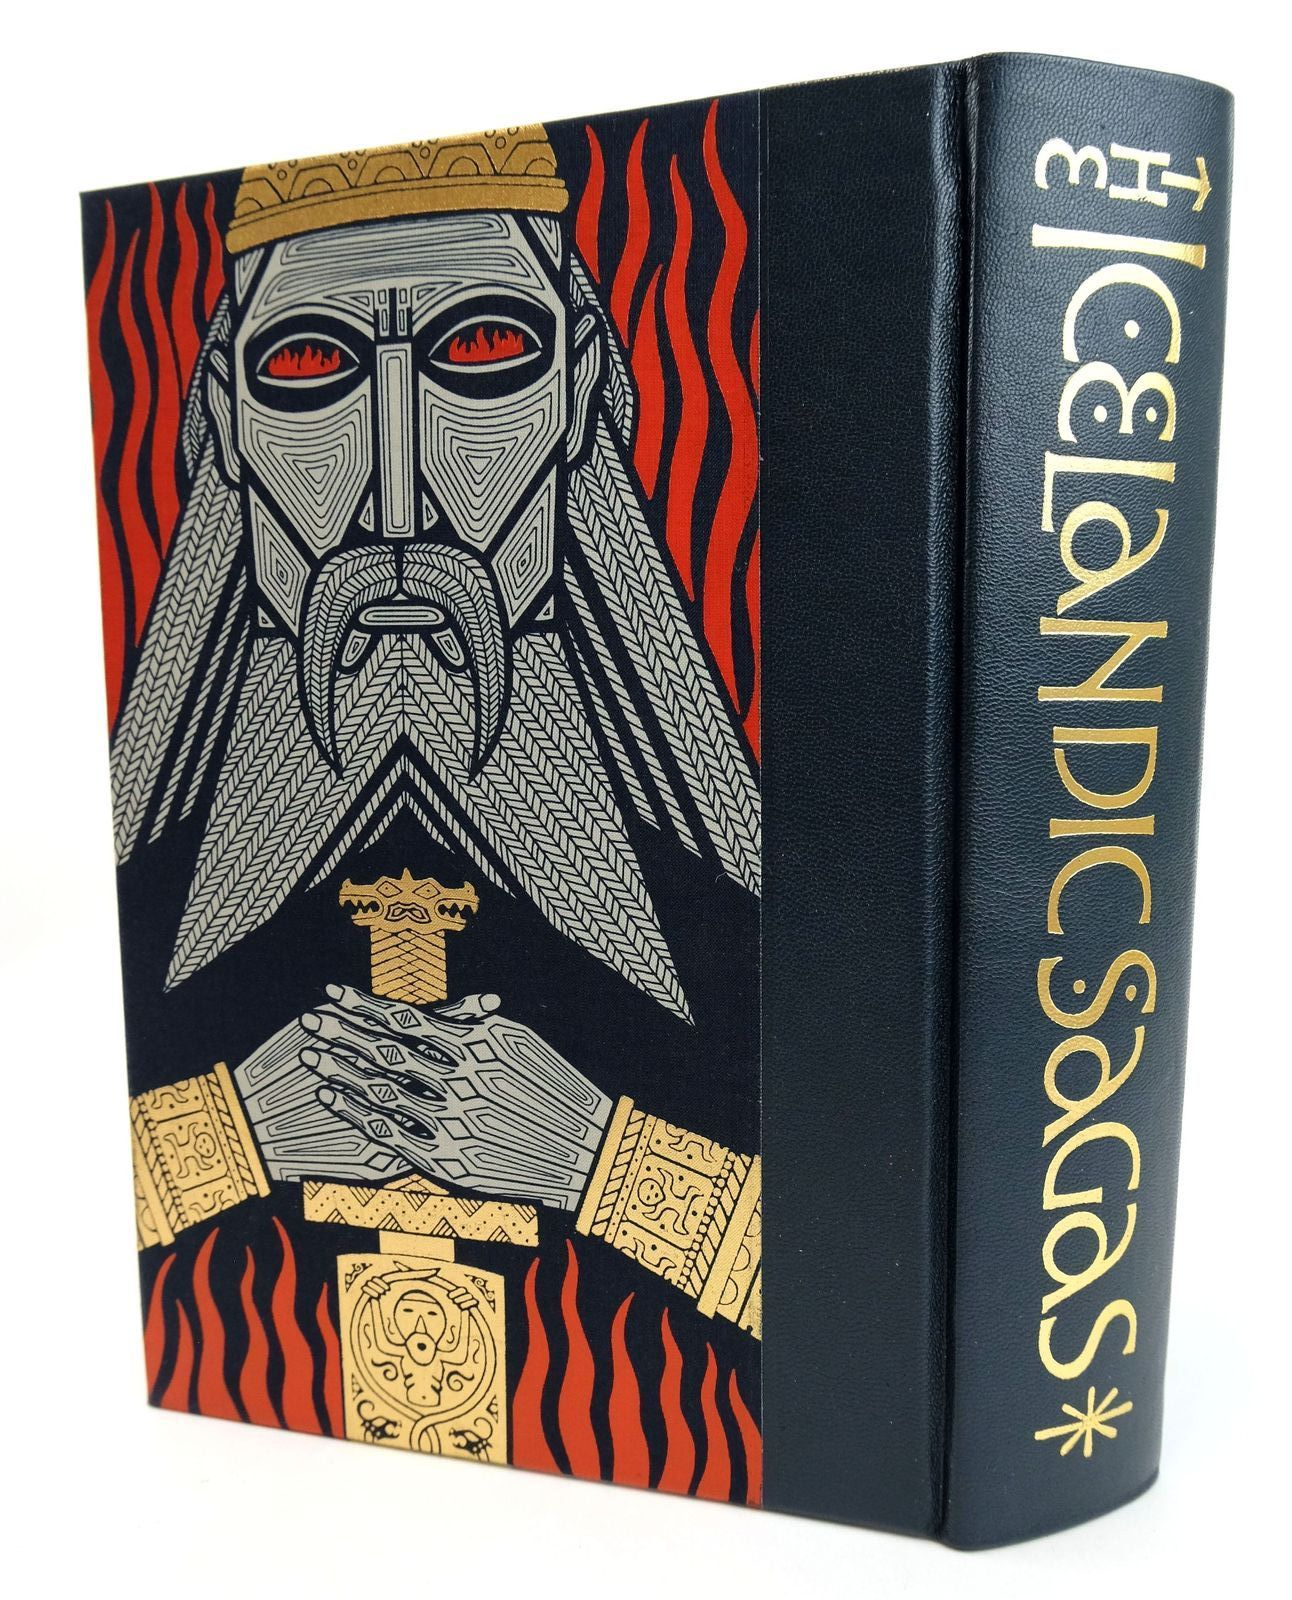 Photo of THE ICELANDIC SAGAS written by Magnusson, Magnus illustrated by Noyes, Simon published by Folio Society (STOCK CODE: 1819053)  for sale by Stella & Rose's Books